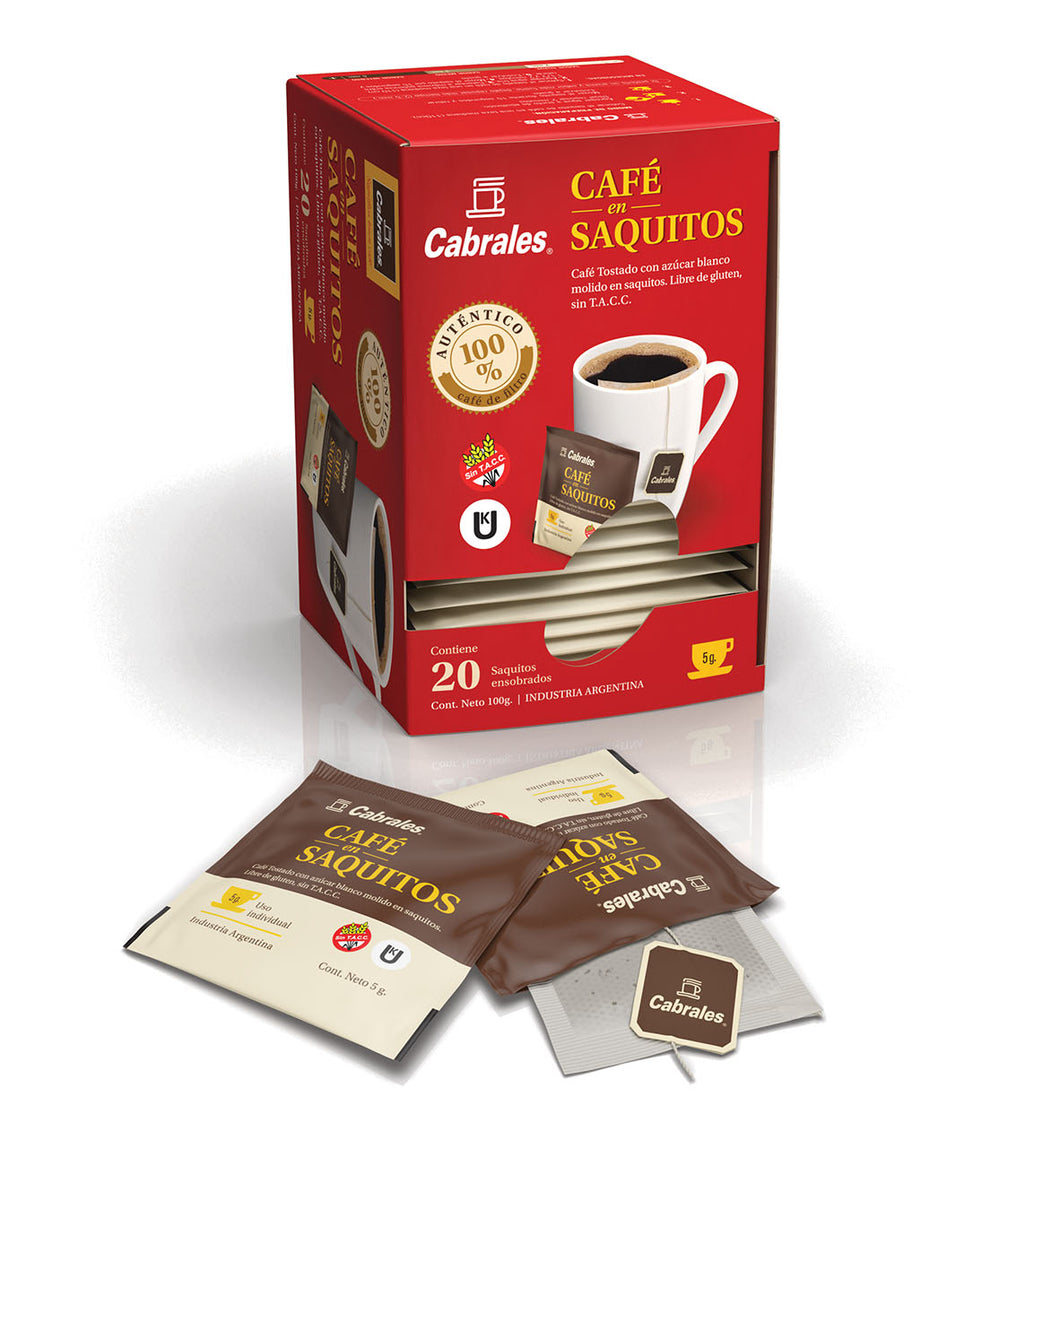 Cabrales Café en Saquitos Coffee Singles (20 units per Box)